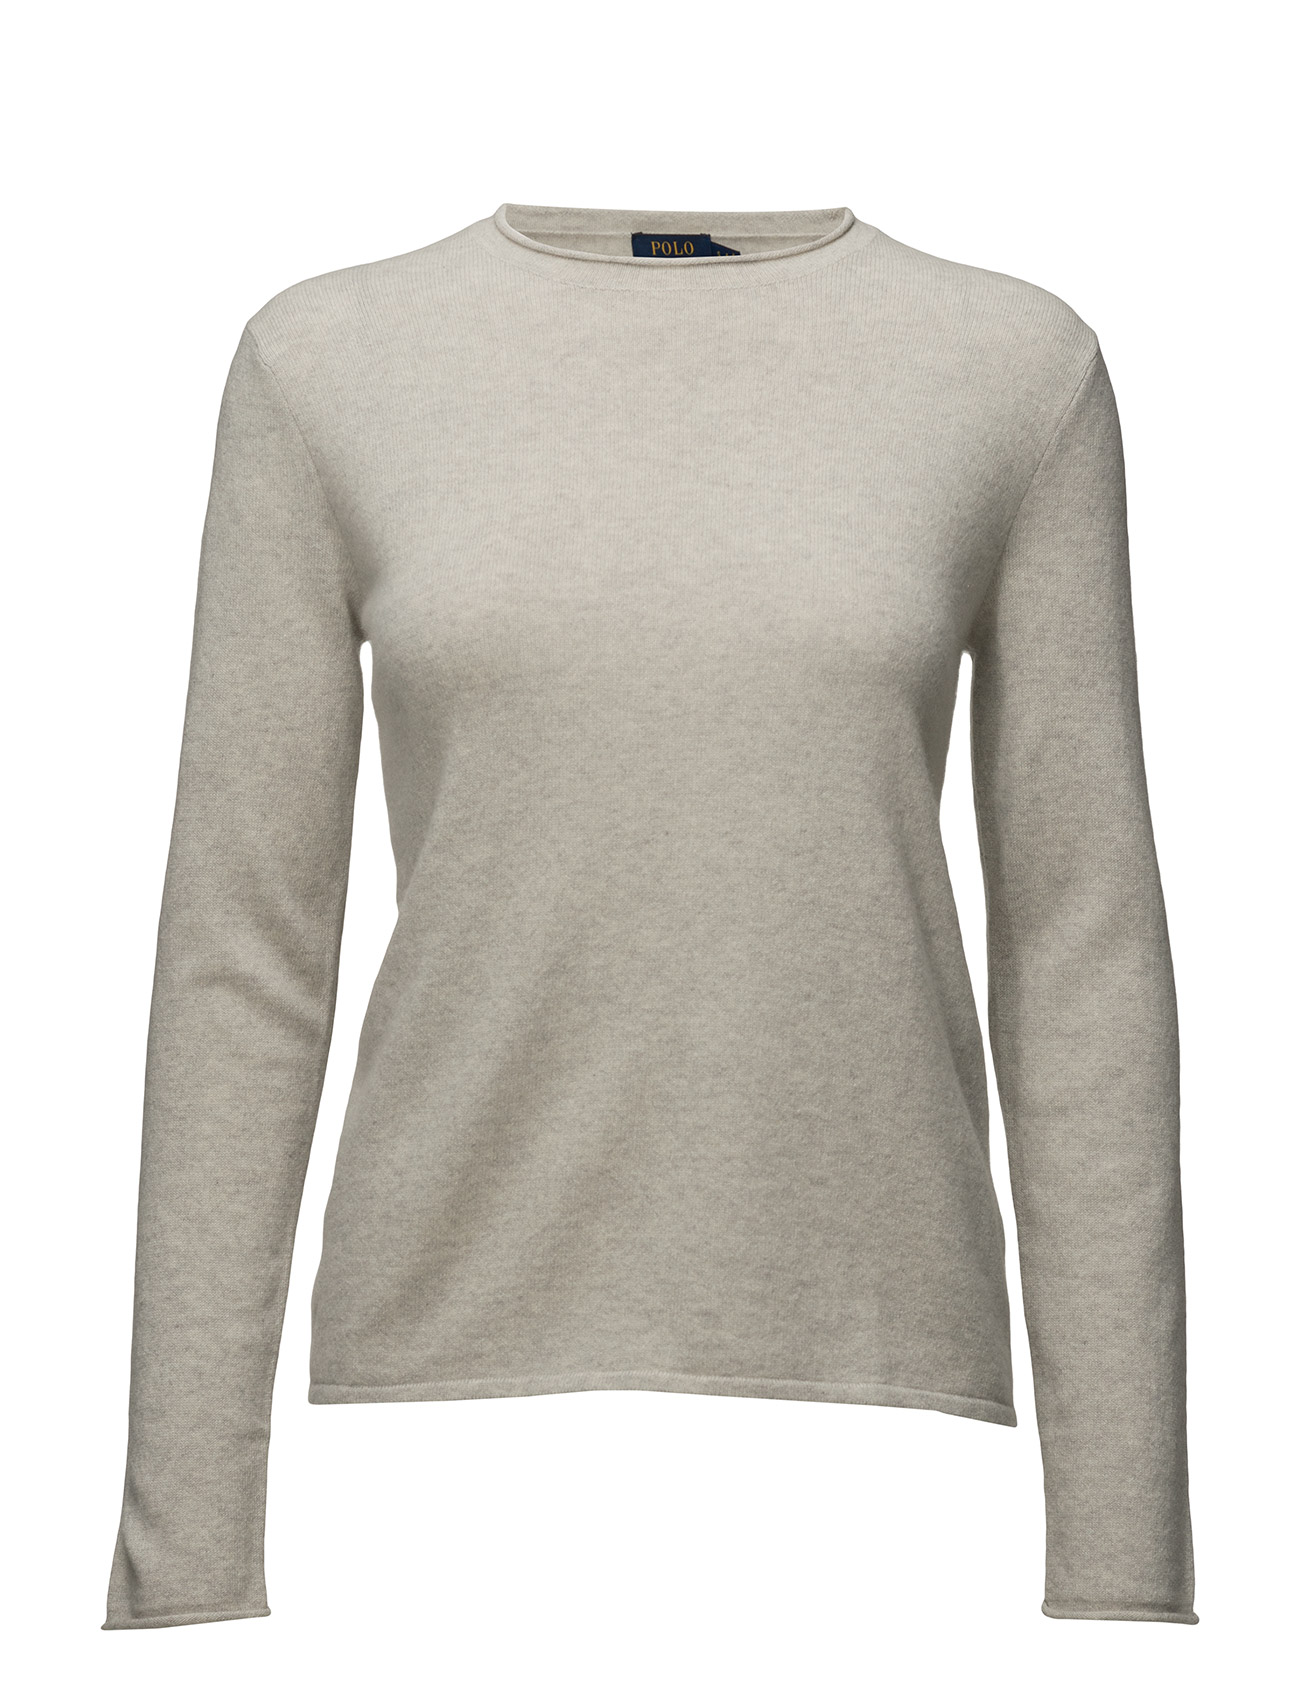 Polo Ralph Lauren Cashmere Rollneck Sweater